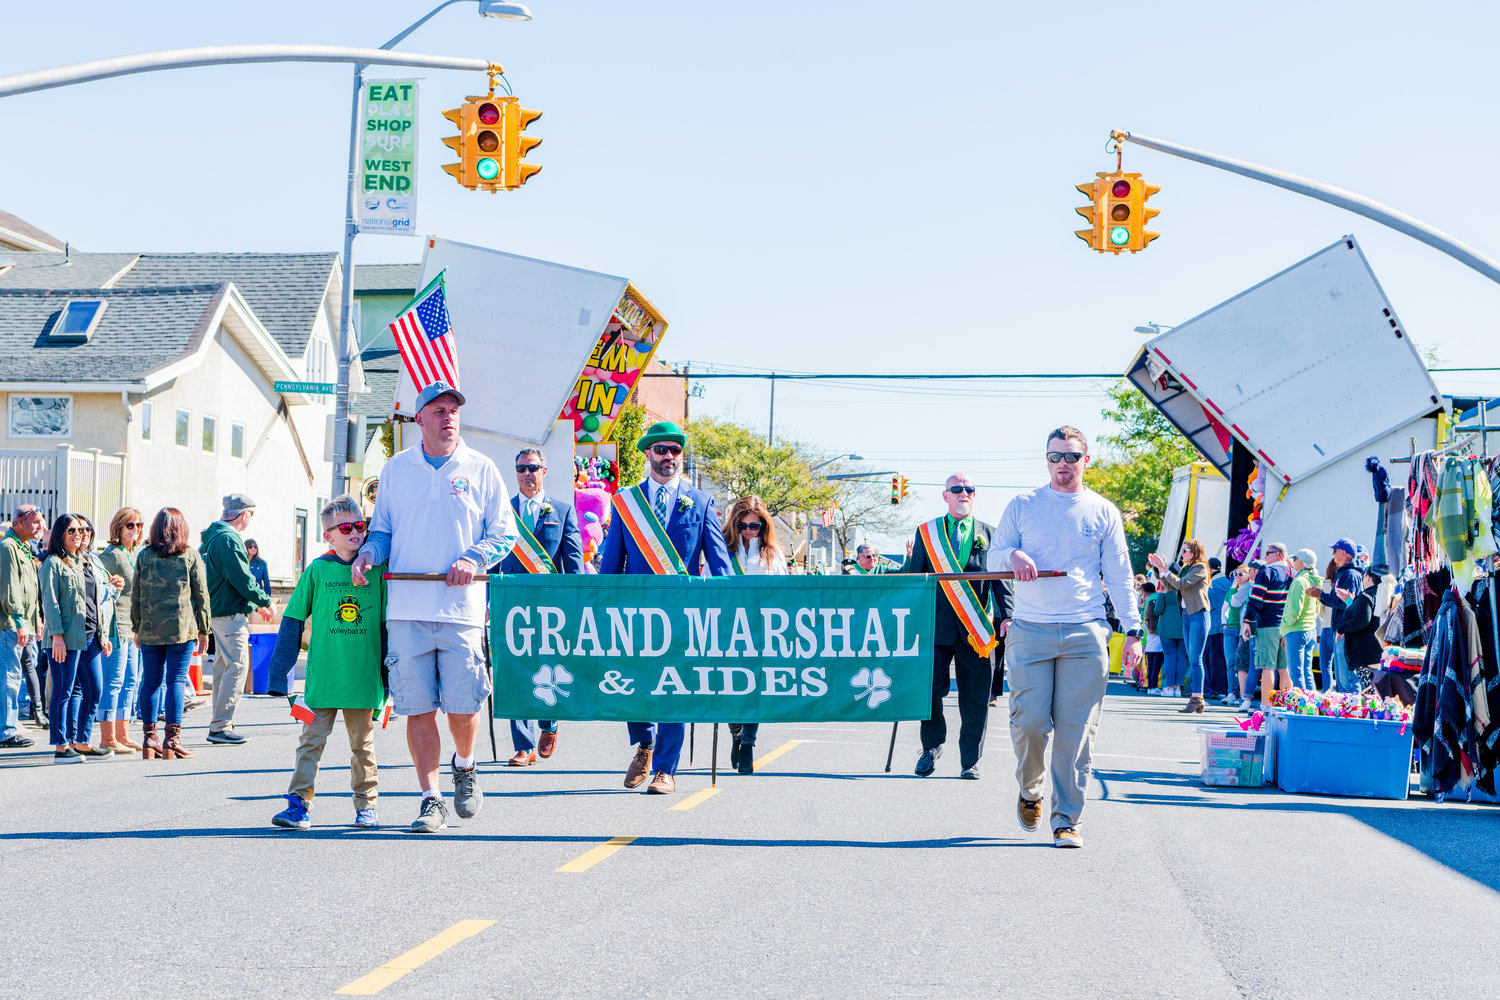 Irish Day parade Grand Marshal Seanie Monaghan, center, marched with the grand marshal aides.